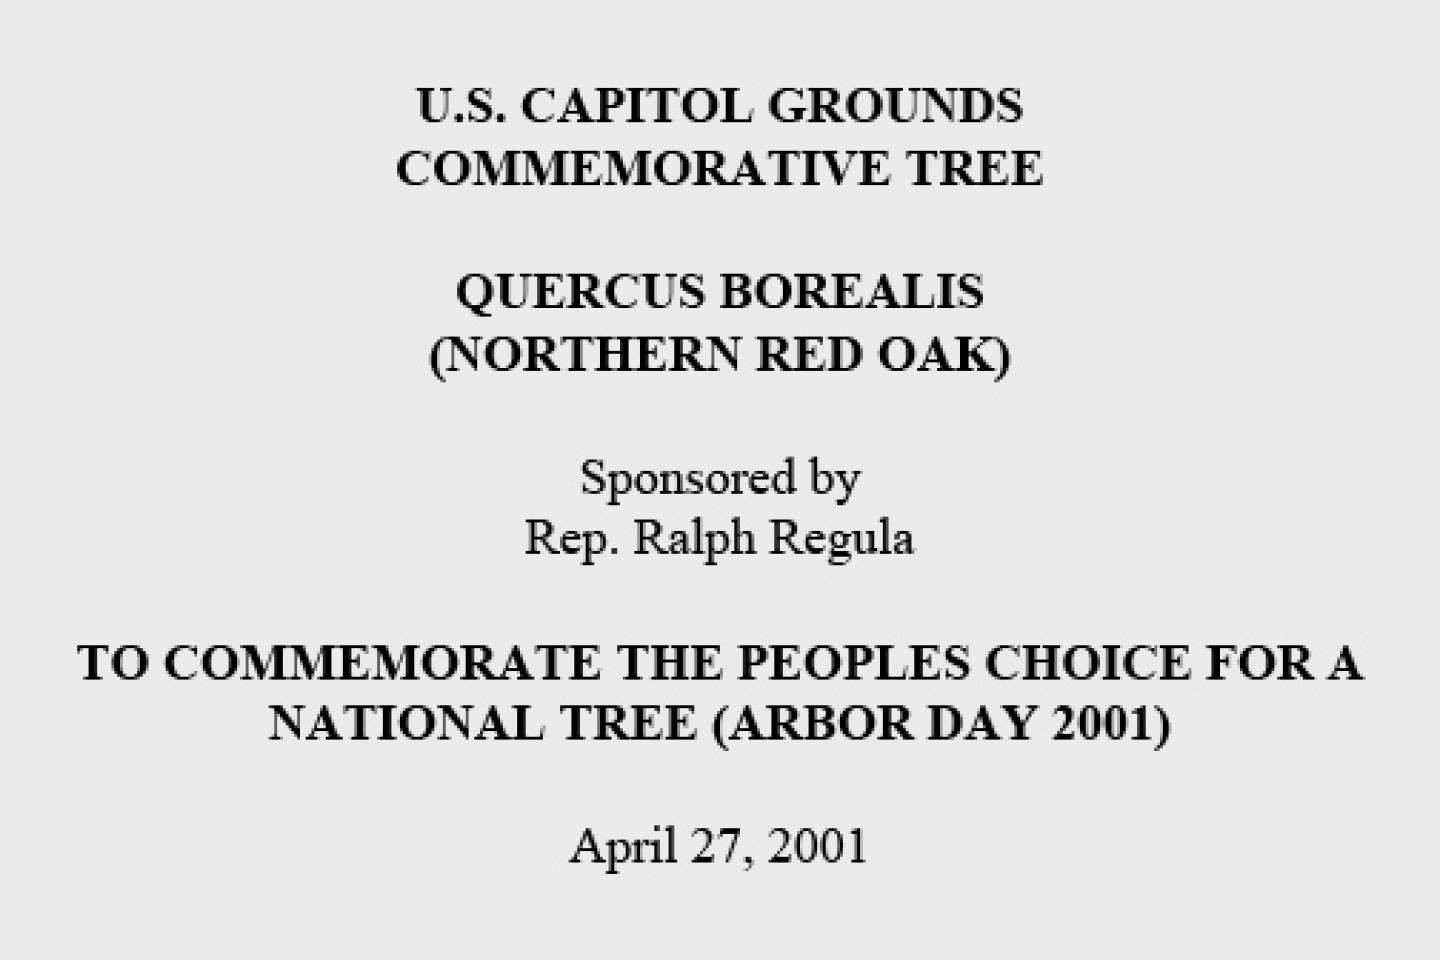 U.S. Capitol Grounds Commemorative Tree  Quercus borealis (Northern Red oak)  Sponsored by Rep. Ralph Regula  To Commemorate the Peoples Choice for a National Tree (Arbor Day 2001)  April 27, 2001